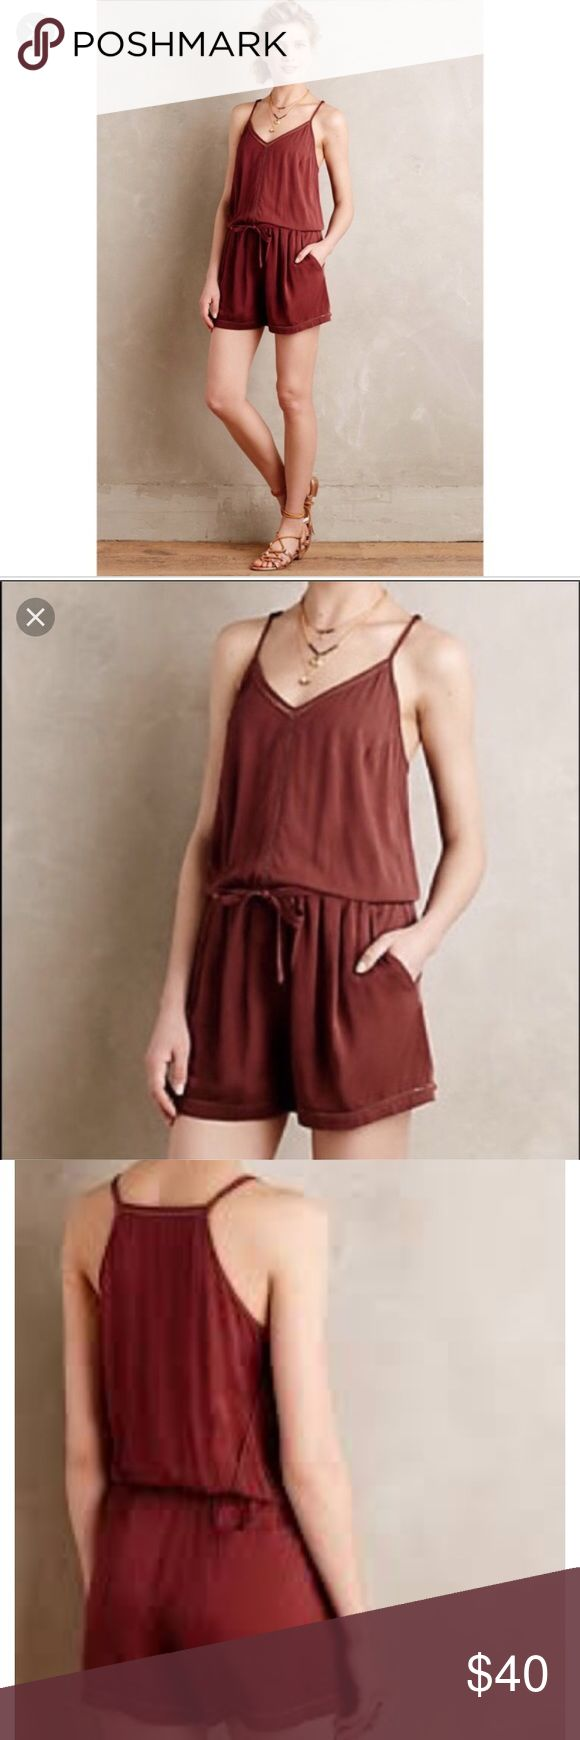 Anthropologie . Lilka. Dressy Romper Worn a few times and in like new condition. Cute romper to dress up or down. No marks or stains on this garment. Anthropologie Pants Jumpsuits & Rompers